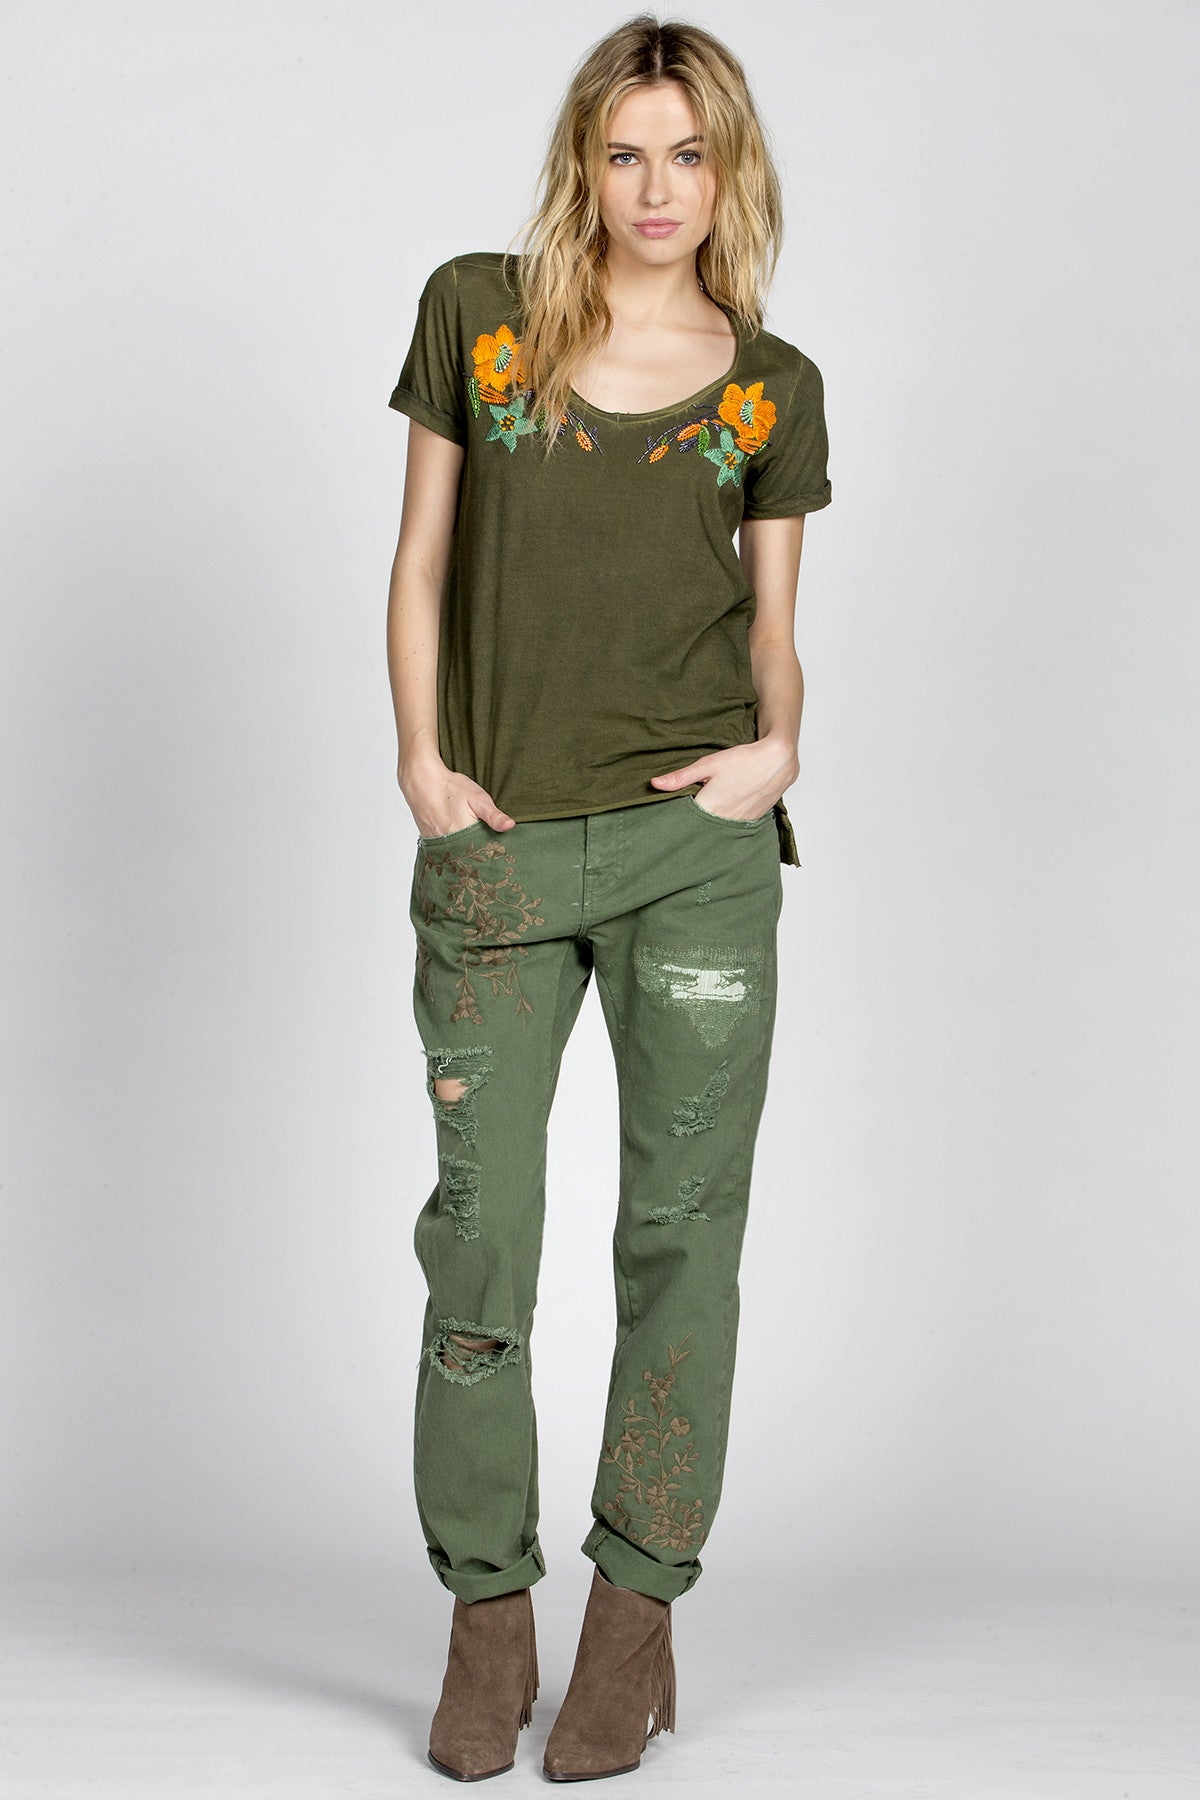 Floral Affair Embroidered Top